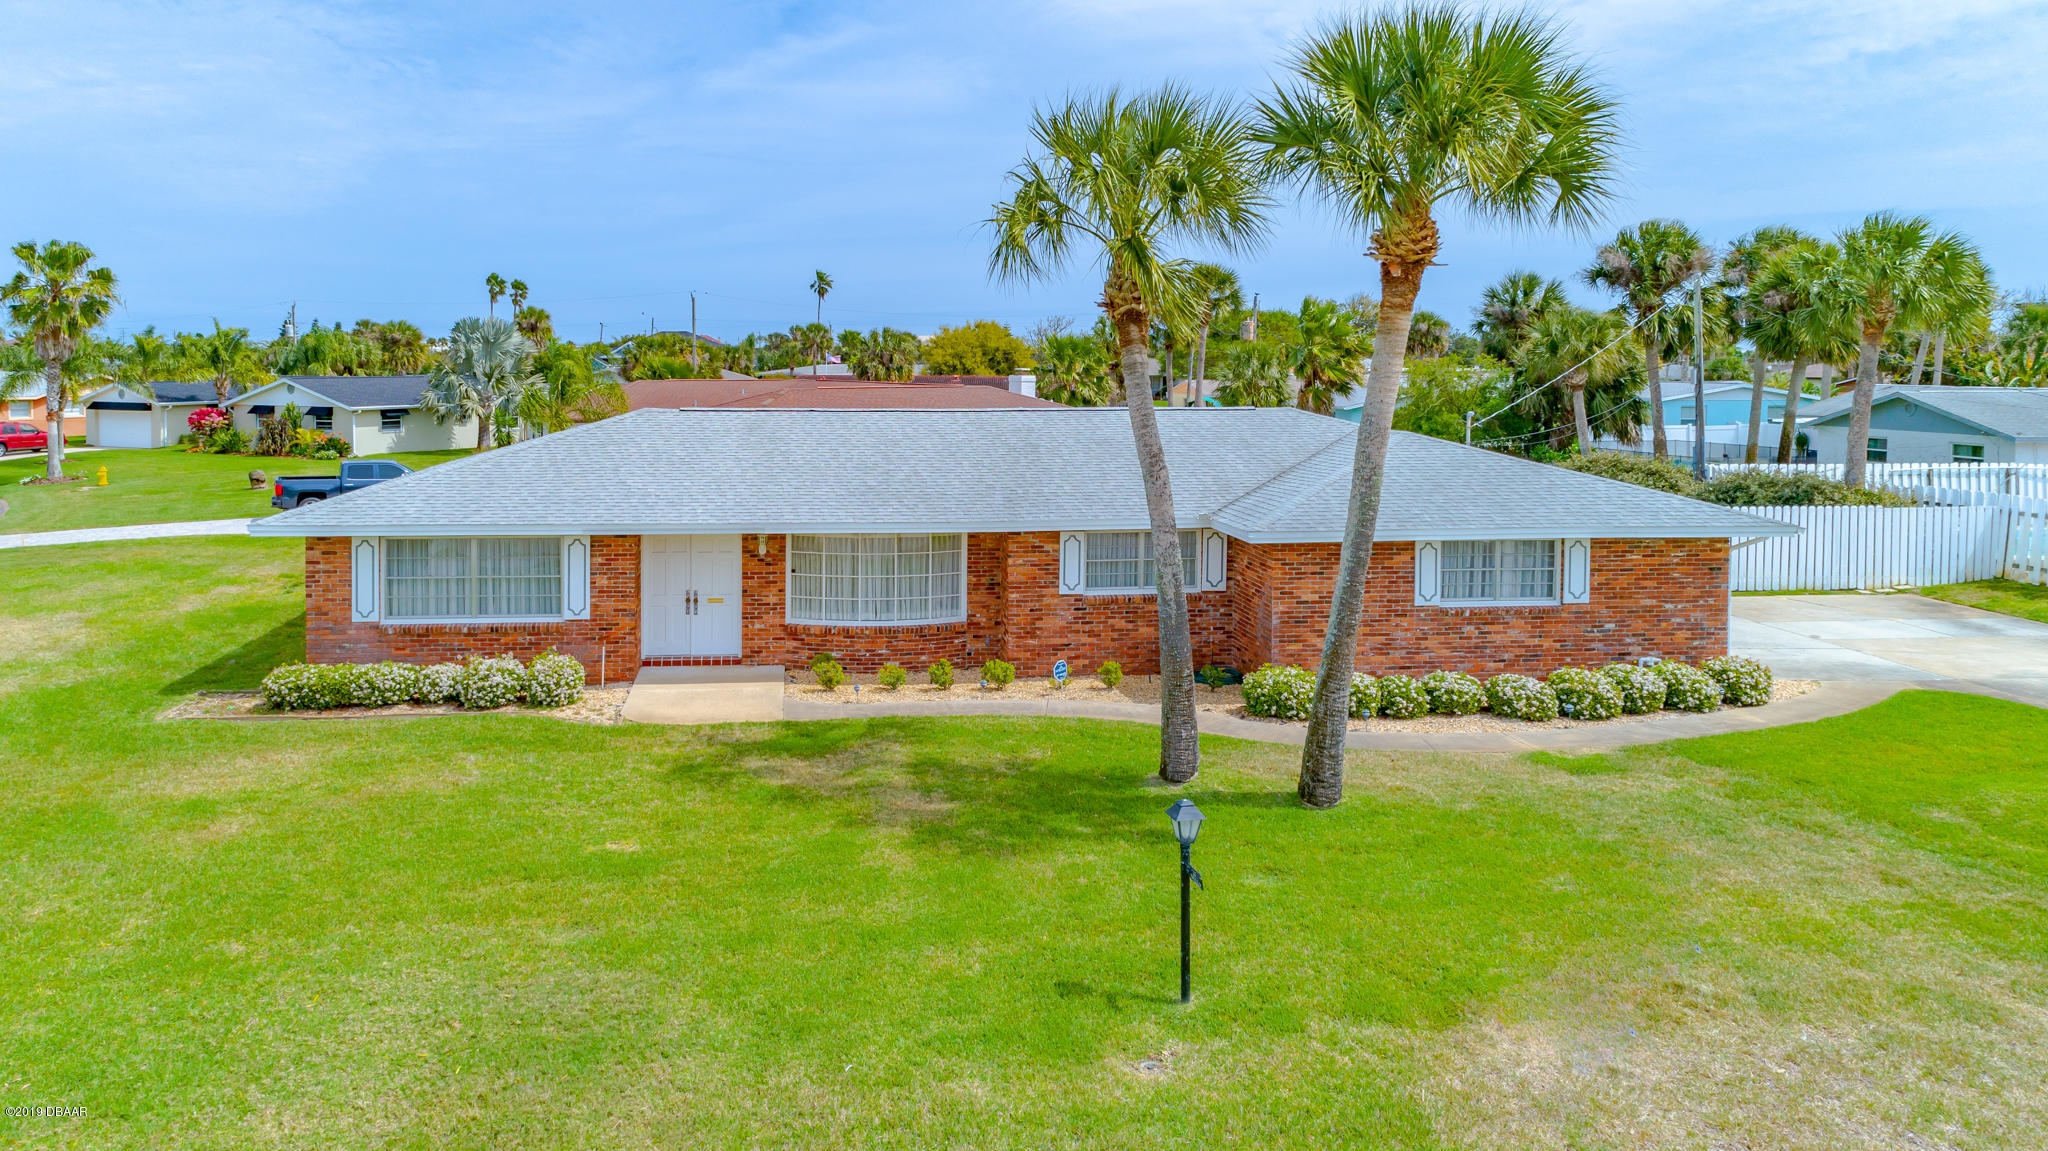 105 Fairway Drive 32176 - One of Ormond Beach Homes for Sale